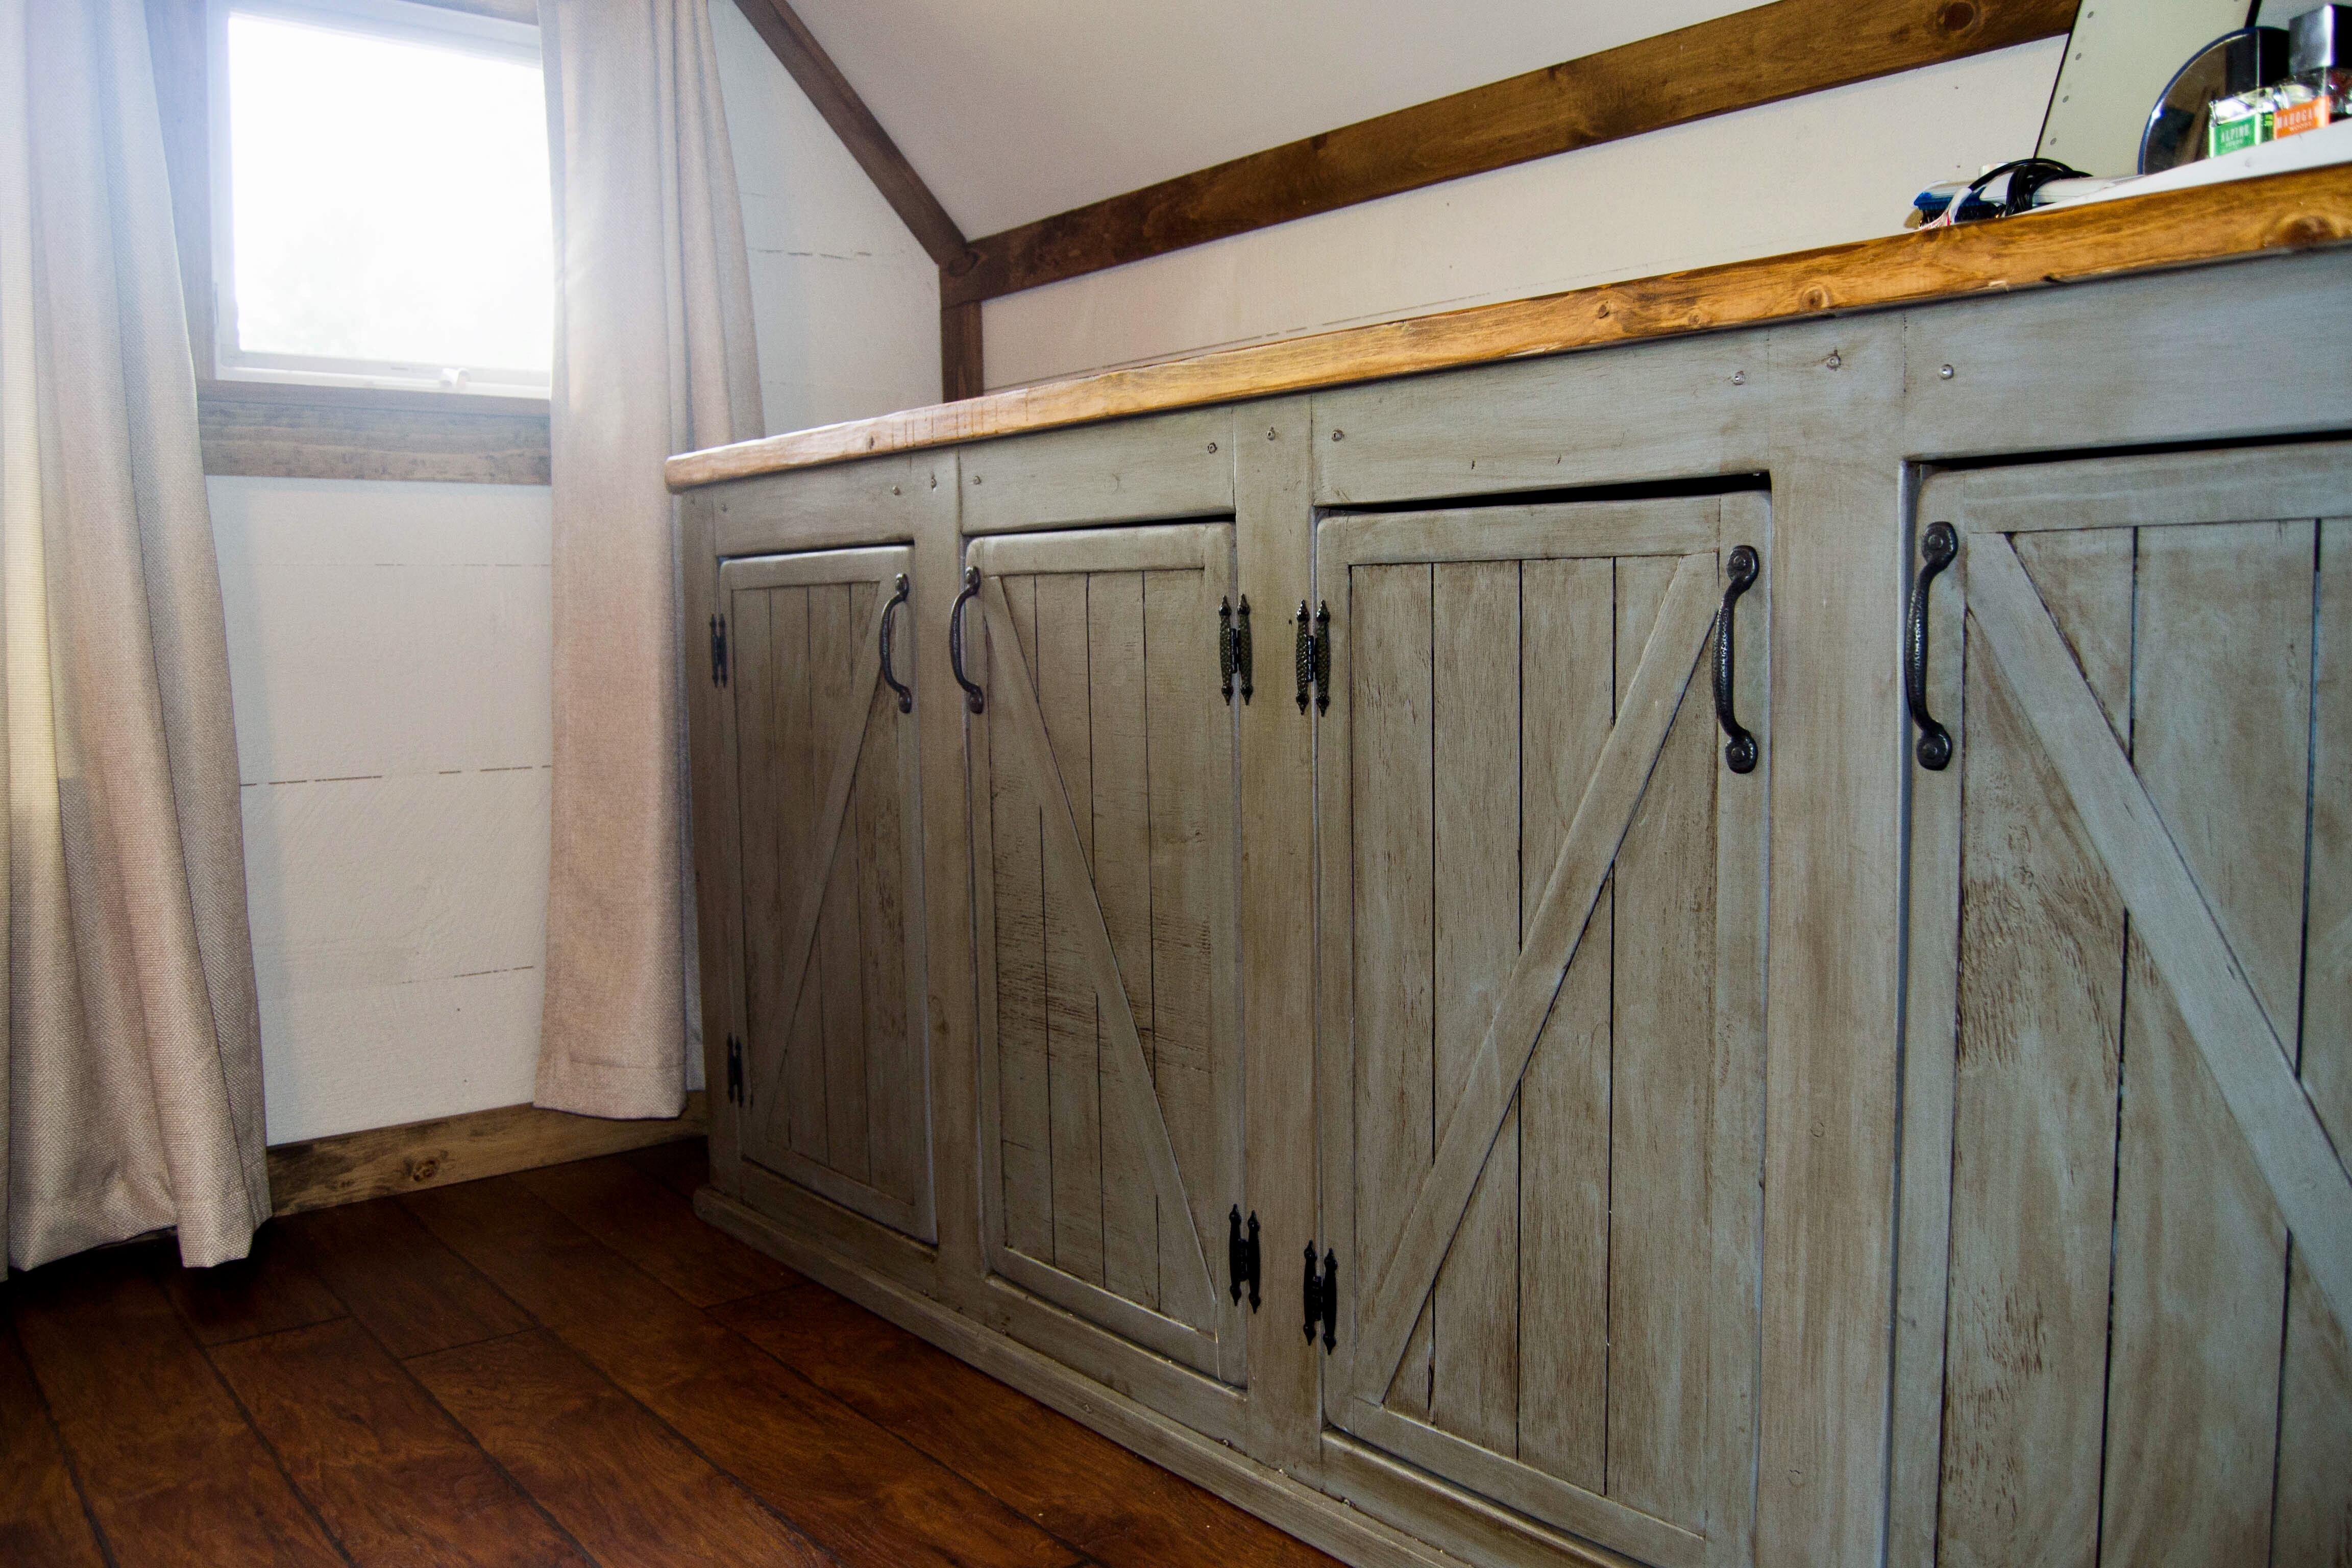 Best ideas about Rustic Cabinets DIY . Save or Pin Ana White Now.